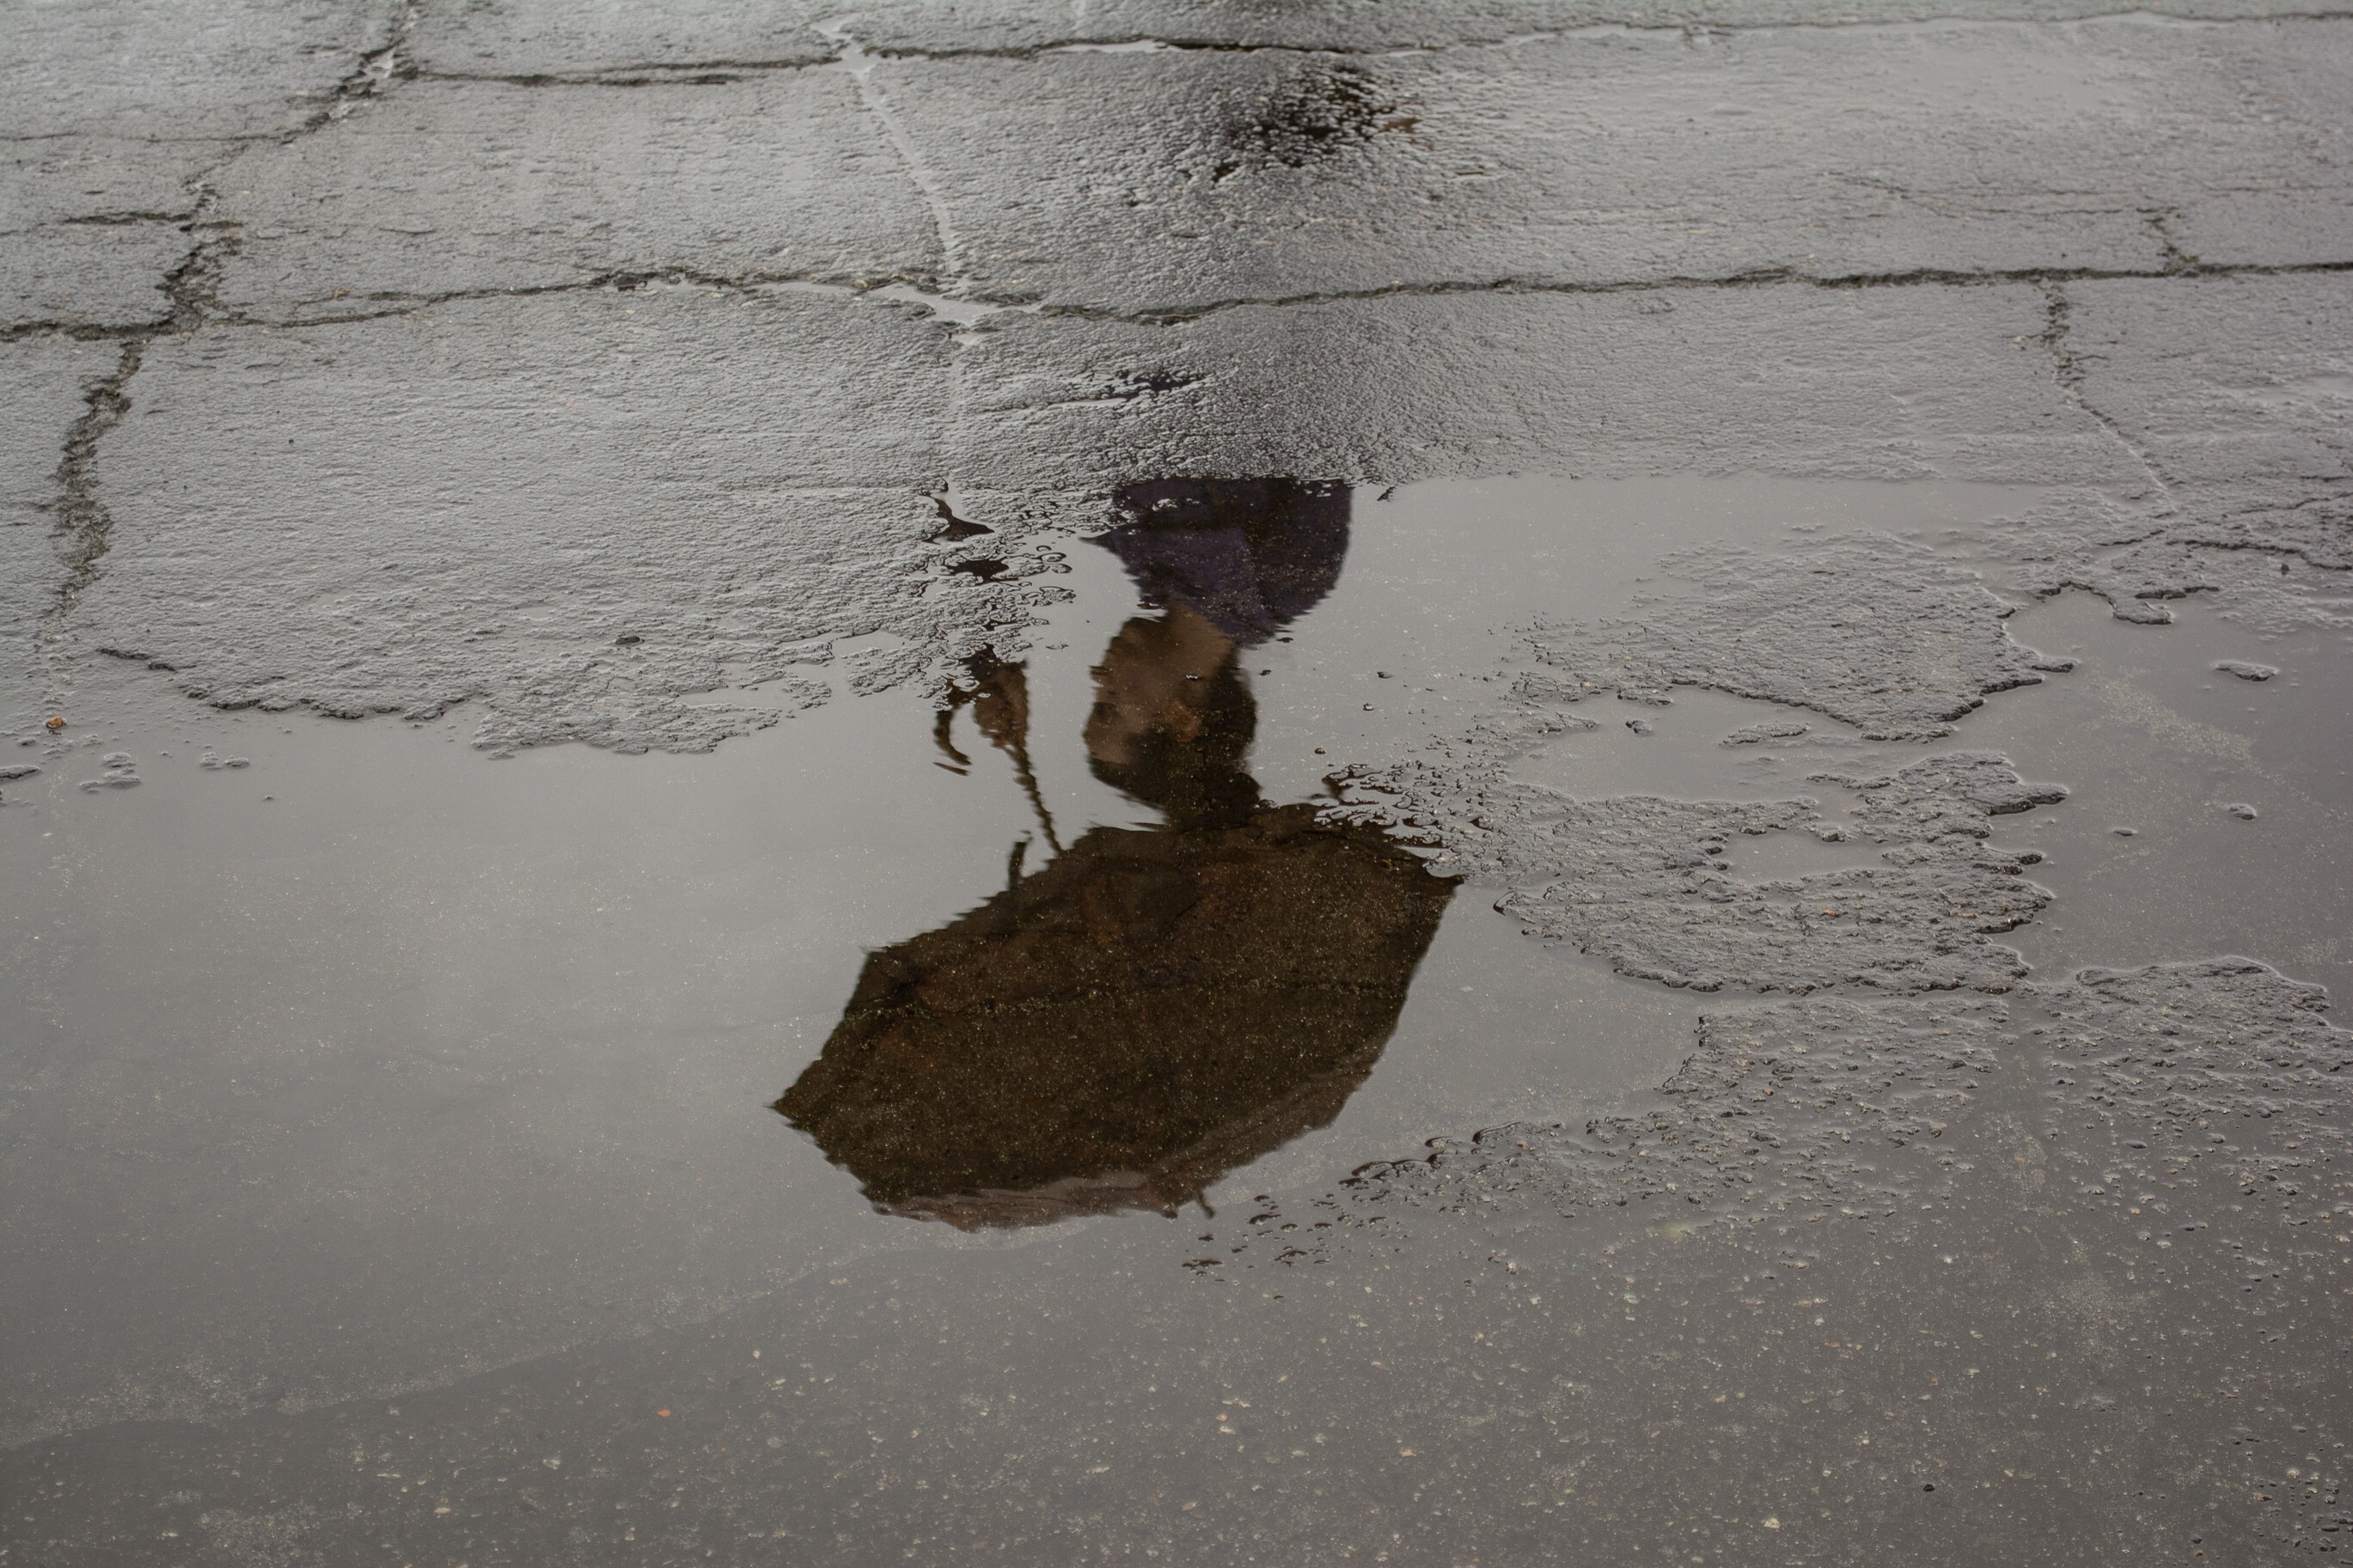 umbrella puddle reflection